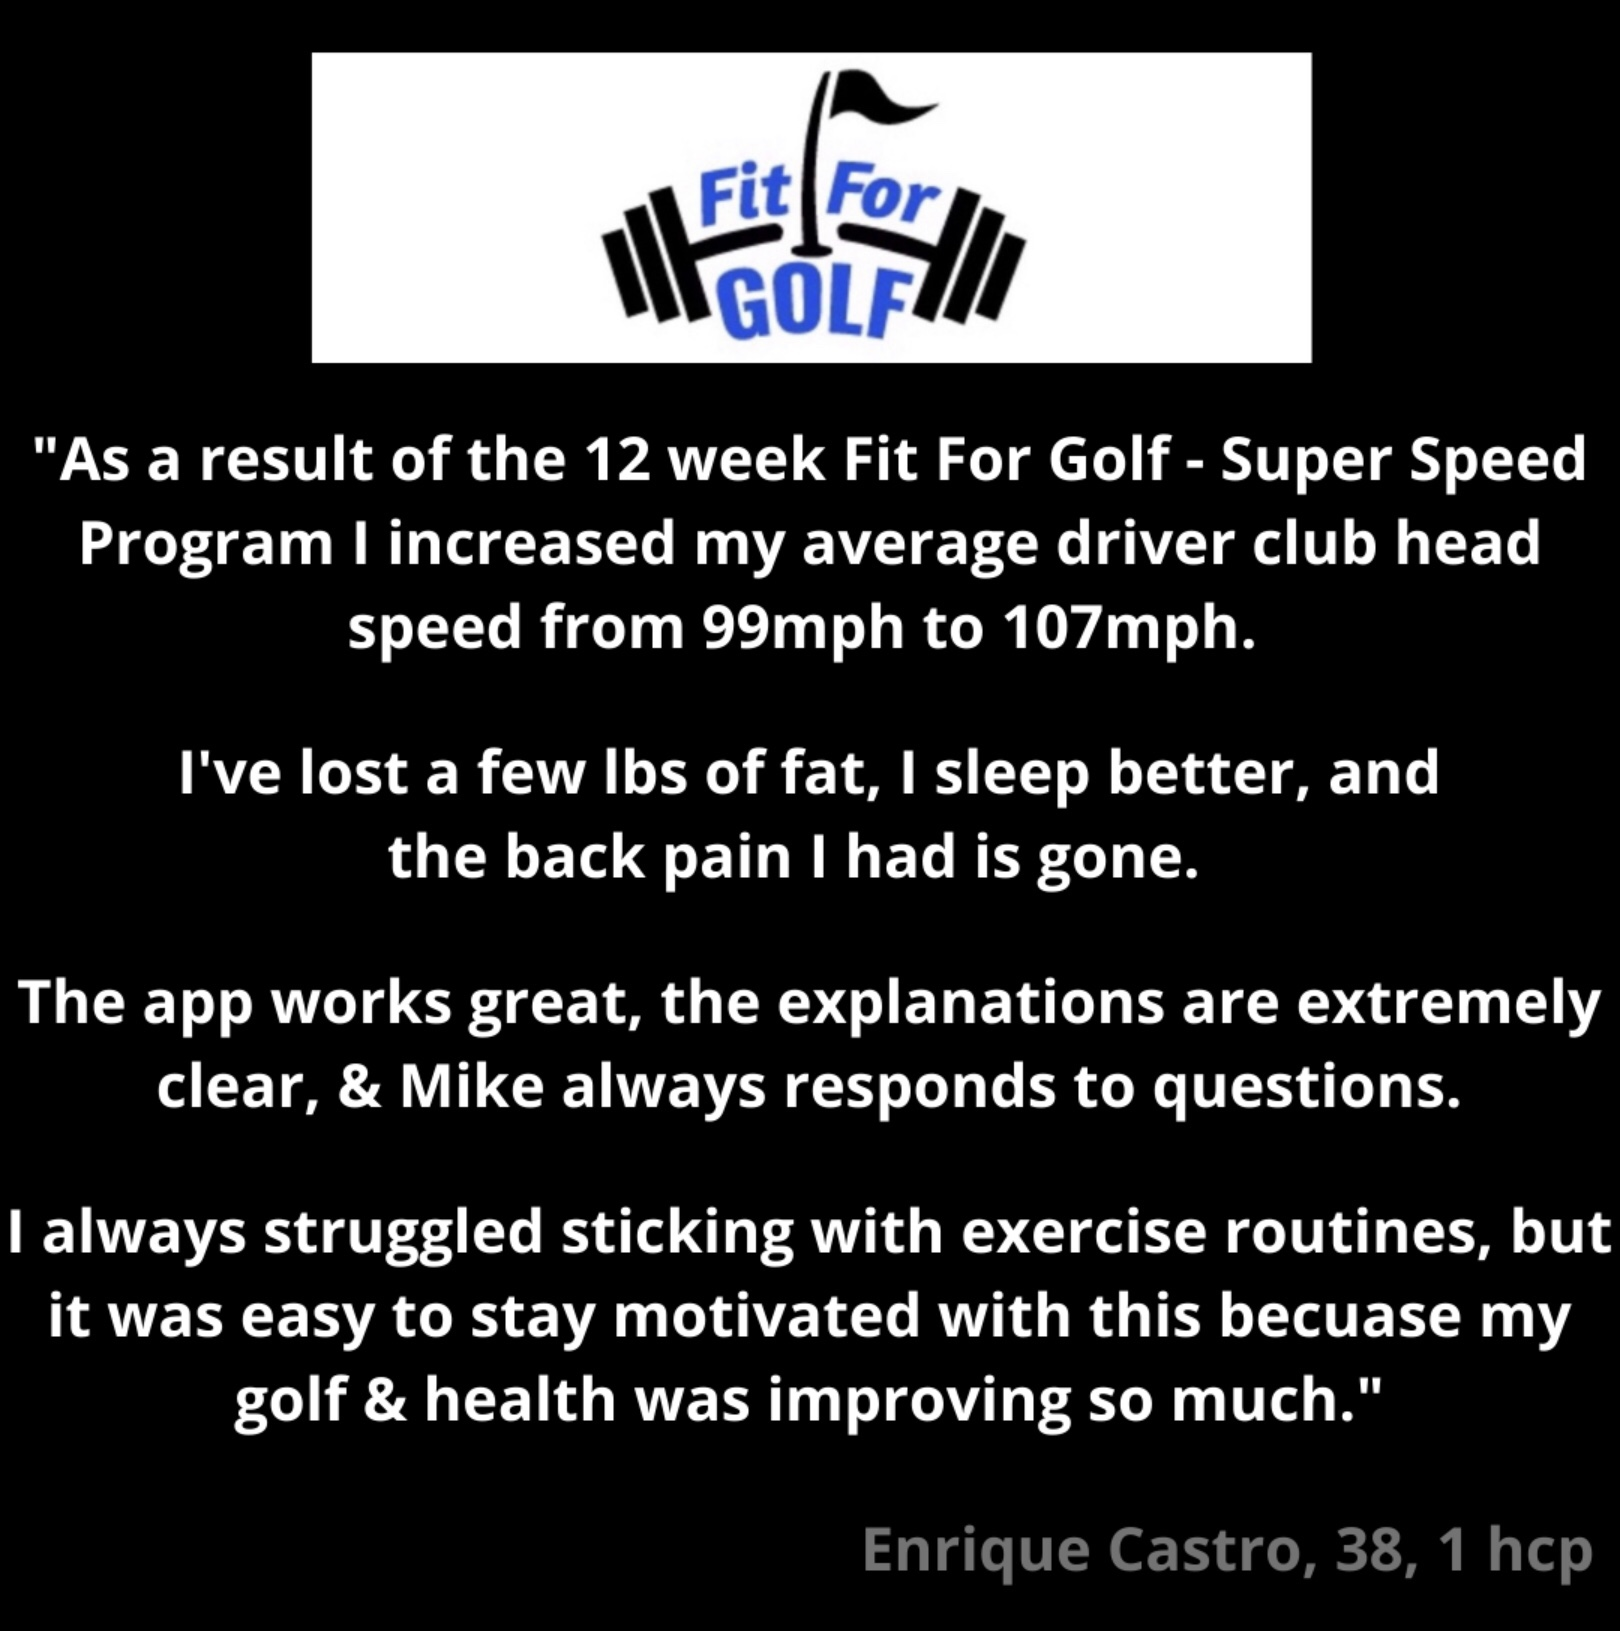 Club Head Speed Increased To Over 100 MPH